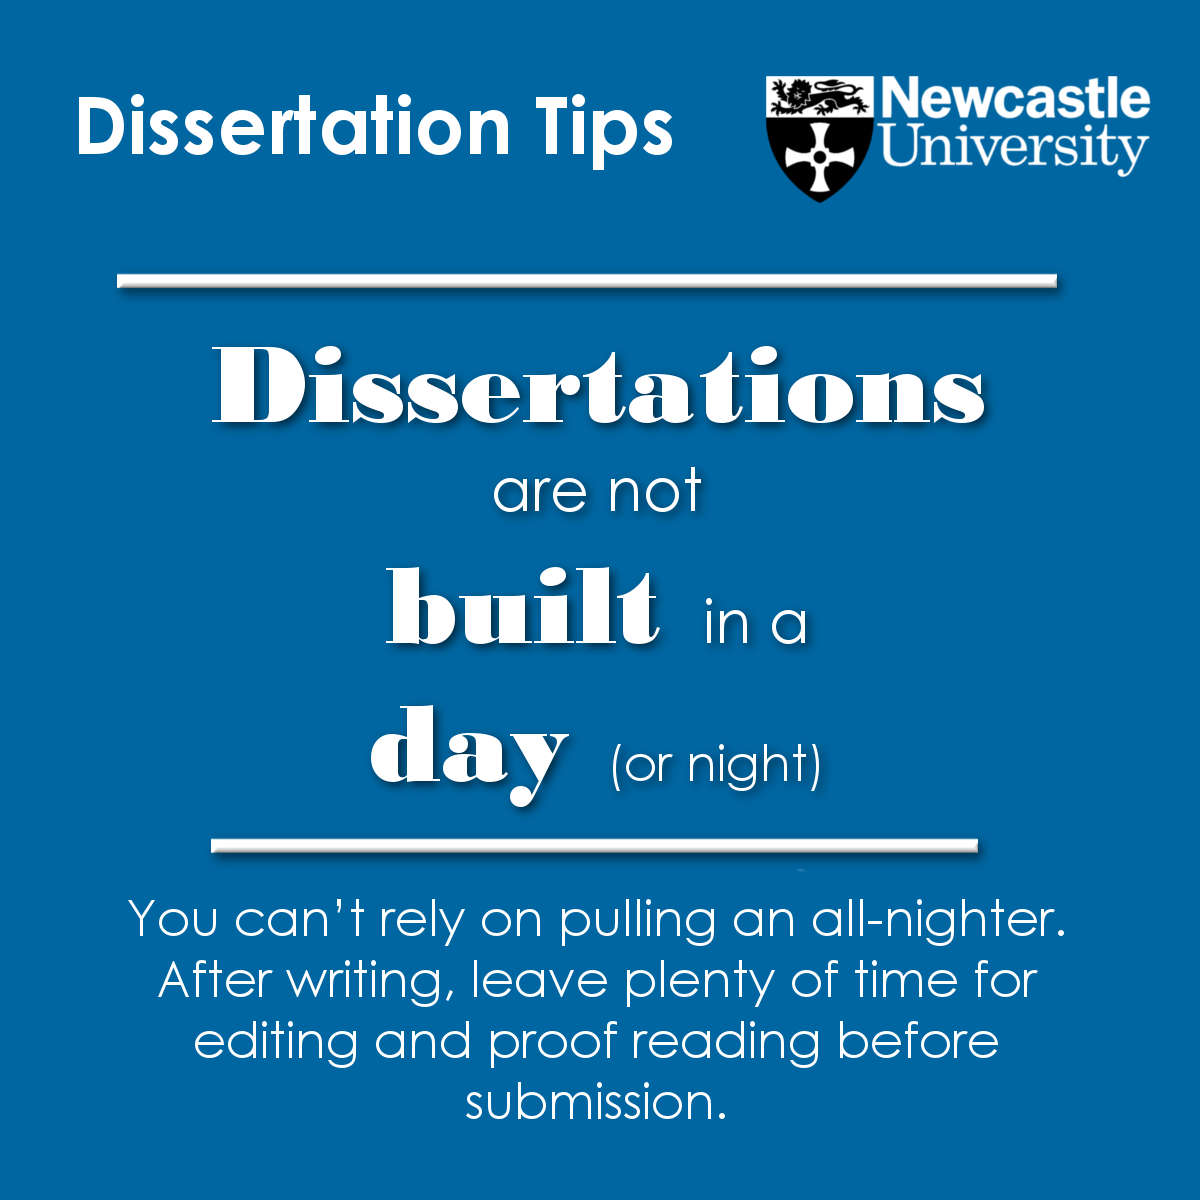 Dissertations are not built in a day You can't rely on pulling an all-nighter. After writing, leave plenty of time for editing and proof reading before submission.